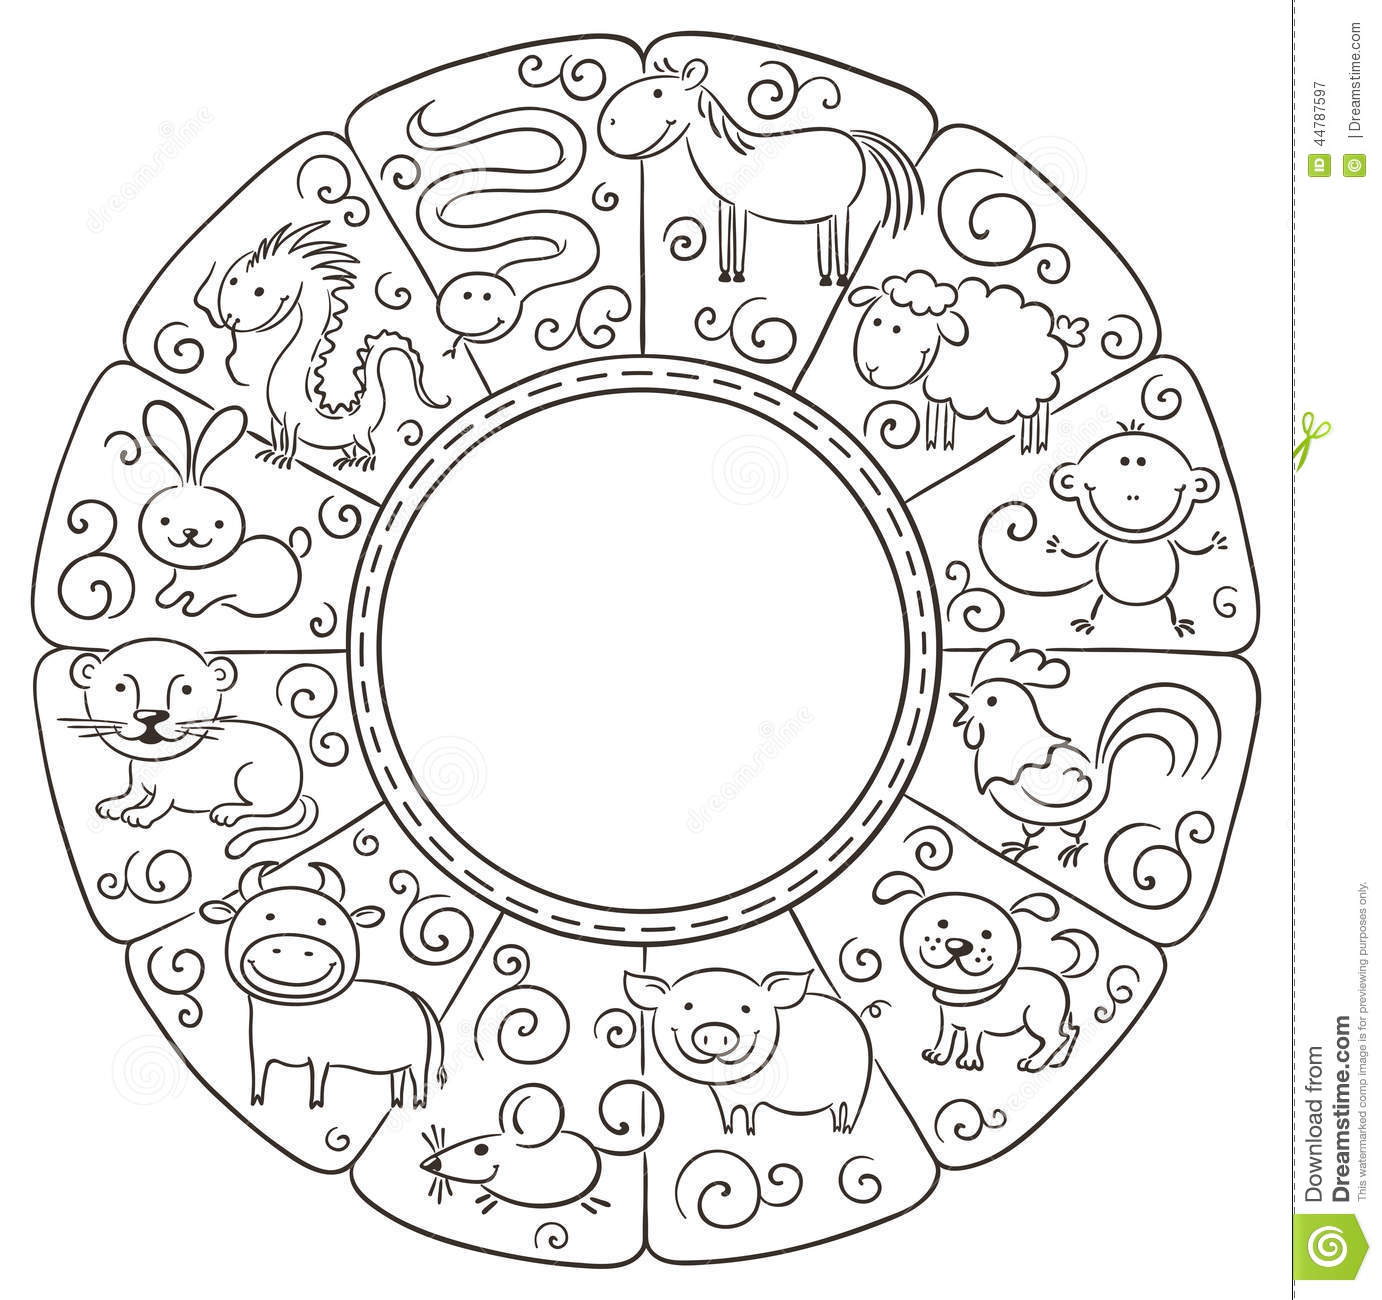 Chinese Zodiac Signs Stock Vector. Illustration Of Group Throughout Free Printable Chinese Zodiac